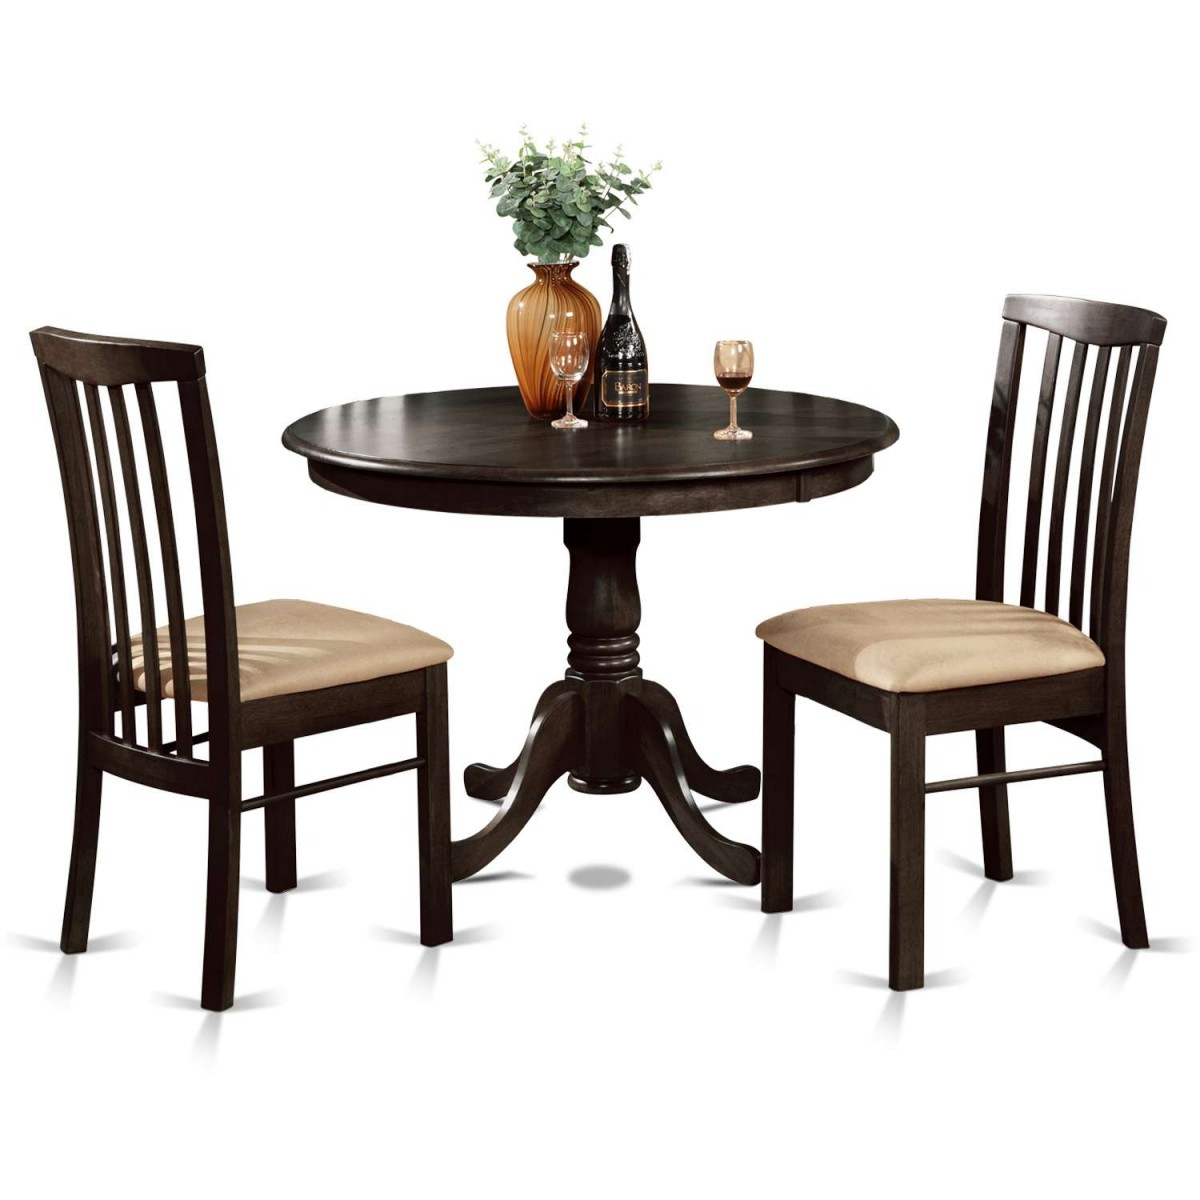 Kitchen Table And Chair Sets Cheap: East West Furniture Hartland 3 Piece Kitchen Nook Dining